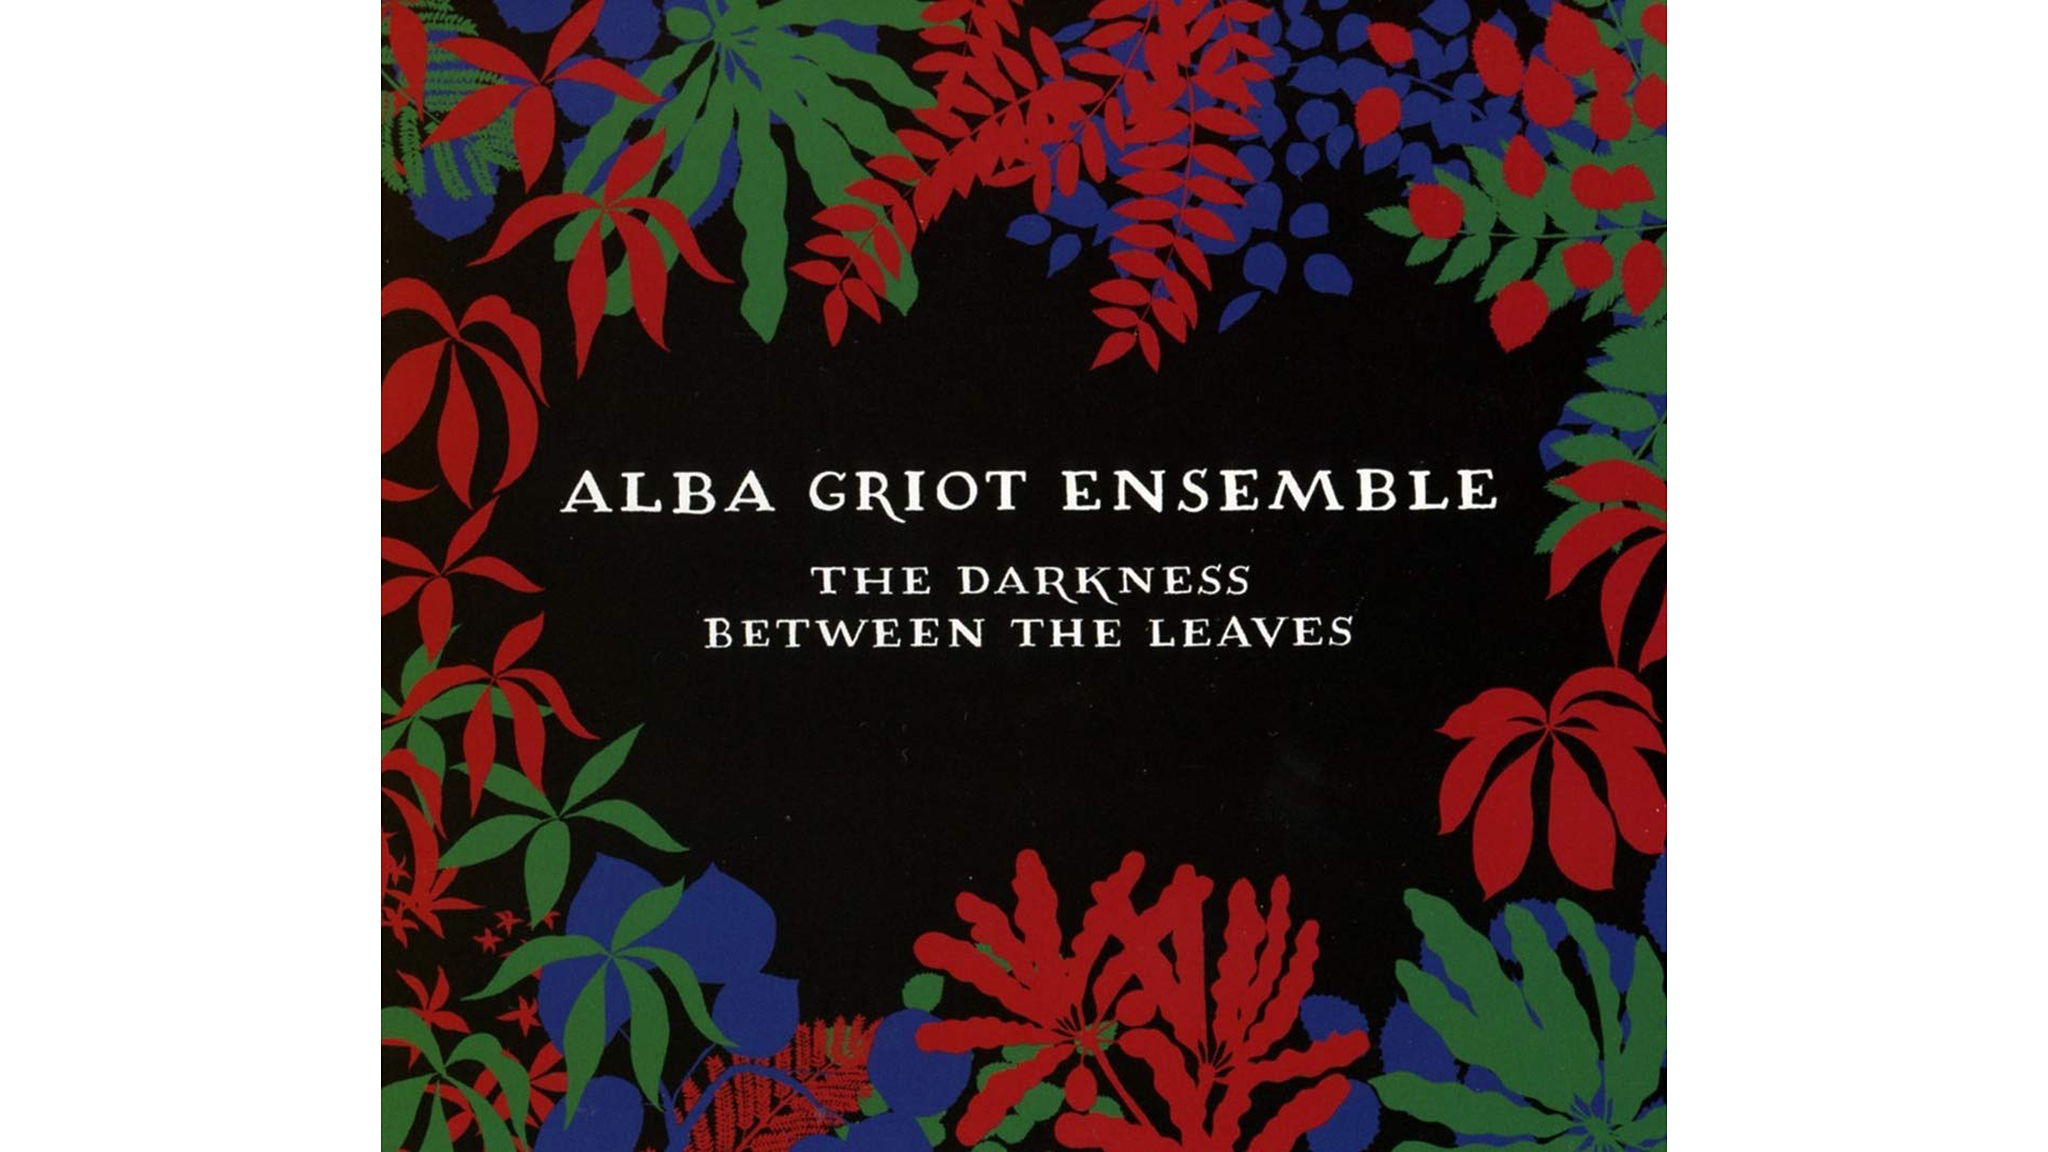 Alba Griot Ensemble: The Darkness Between the Leaves